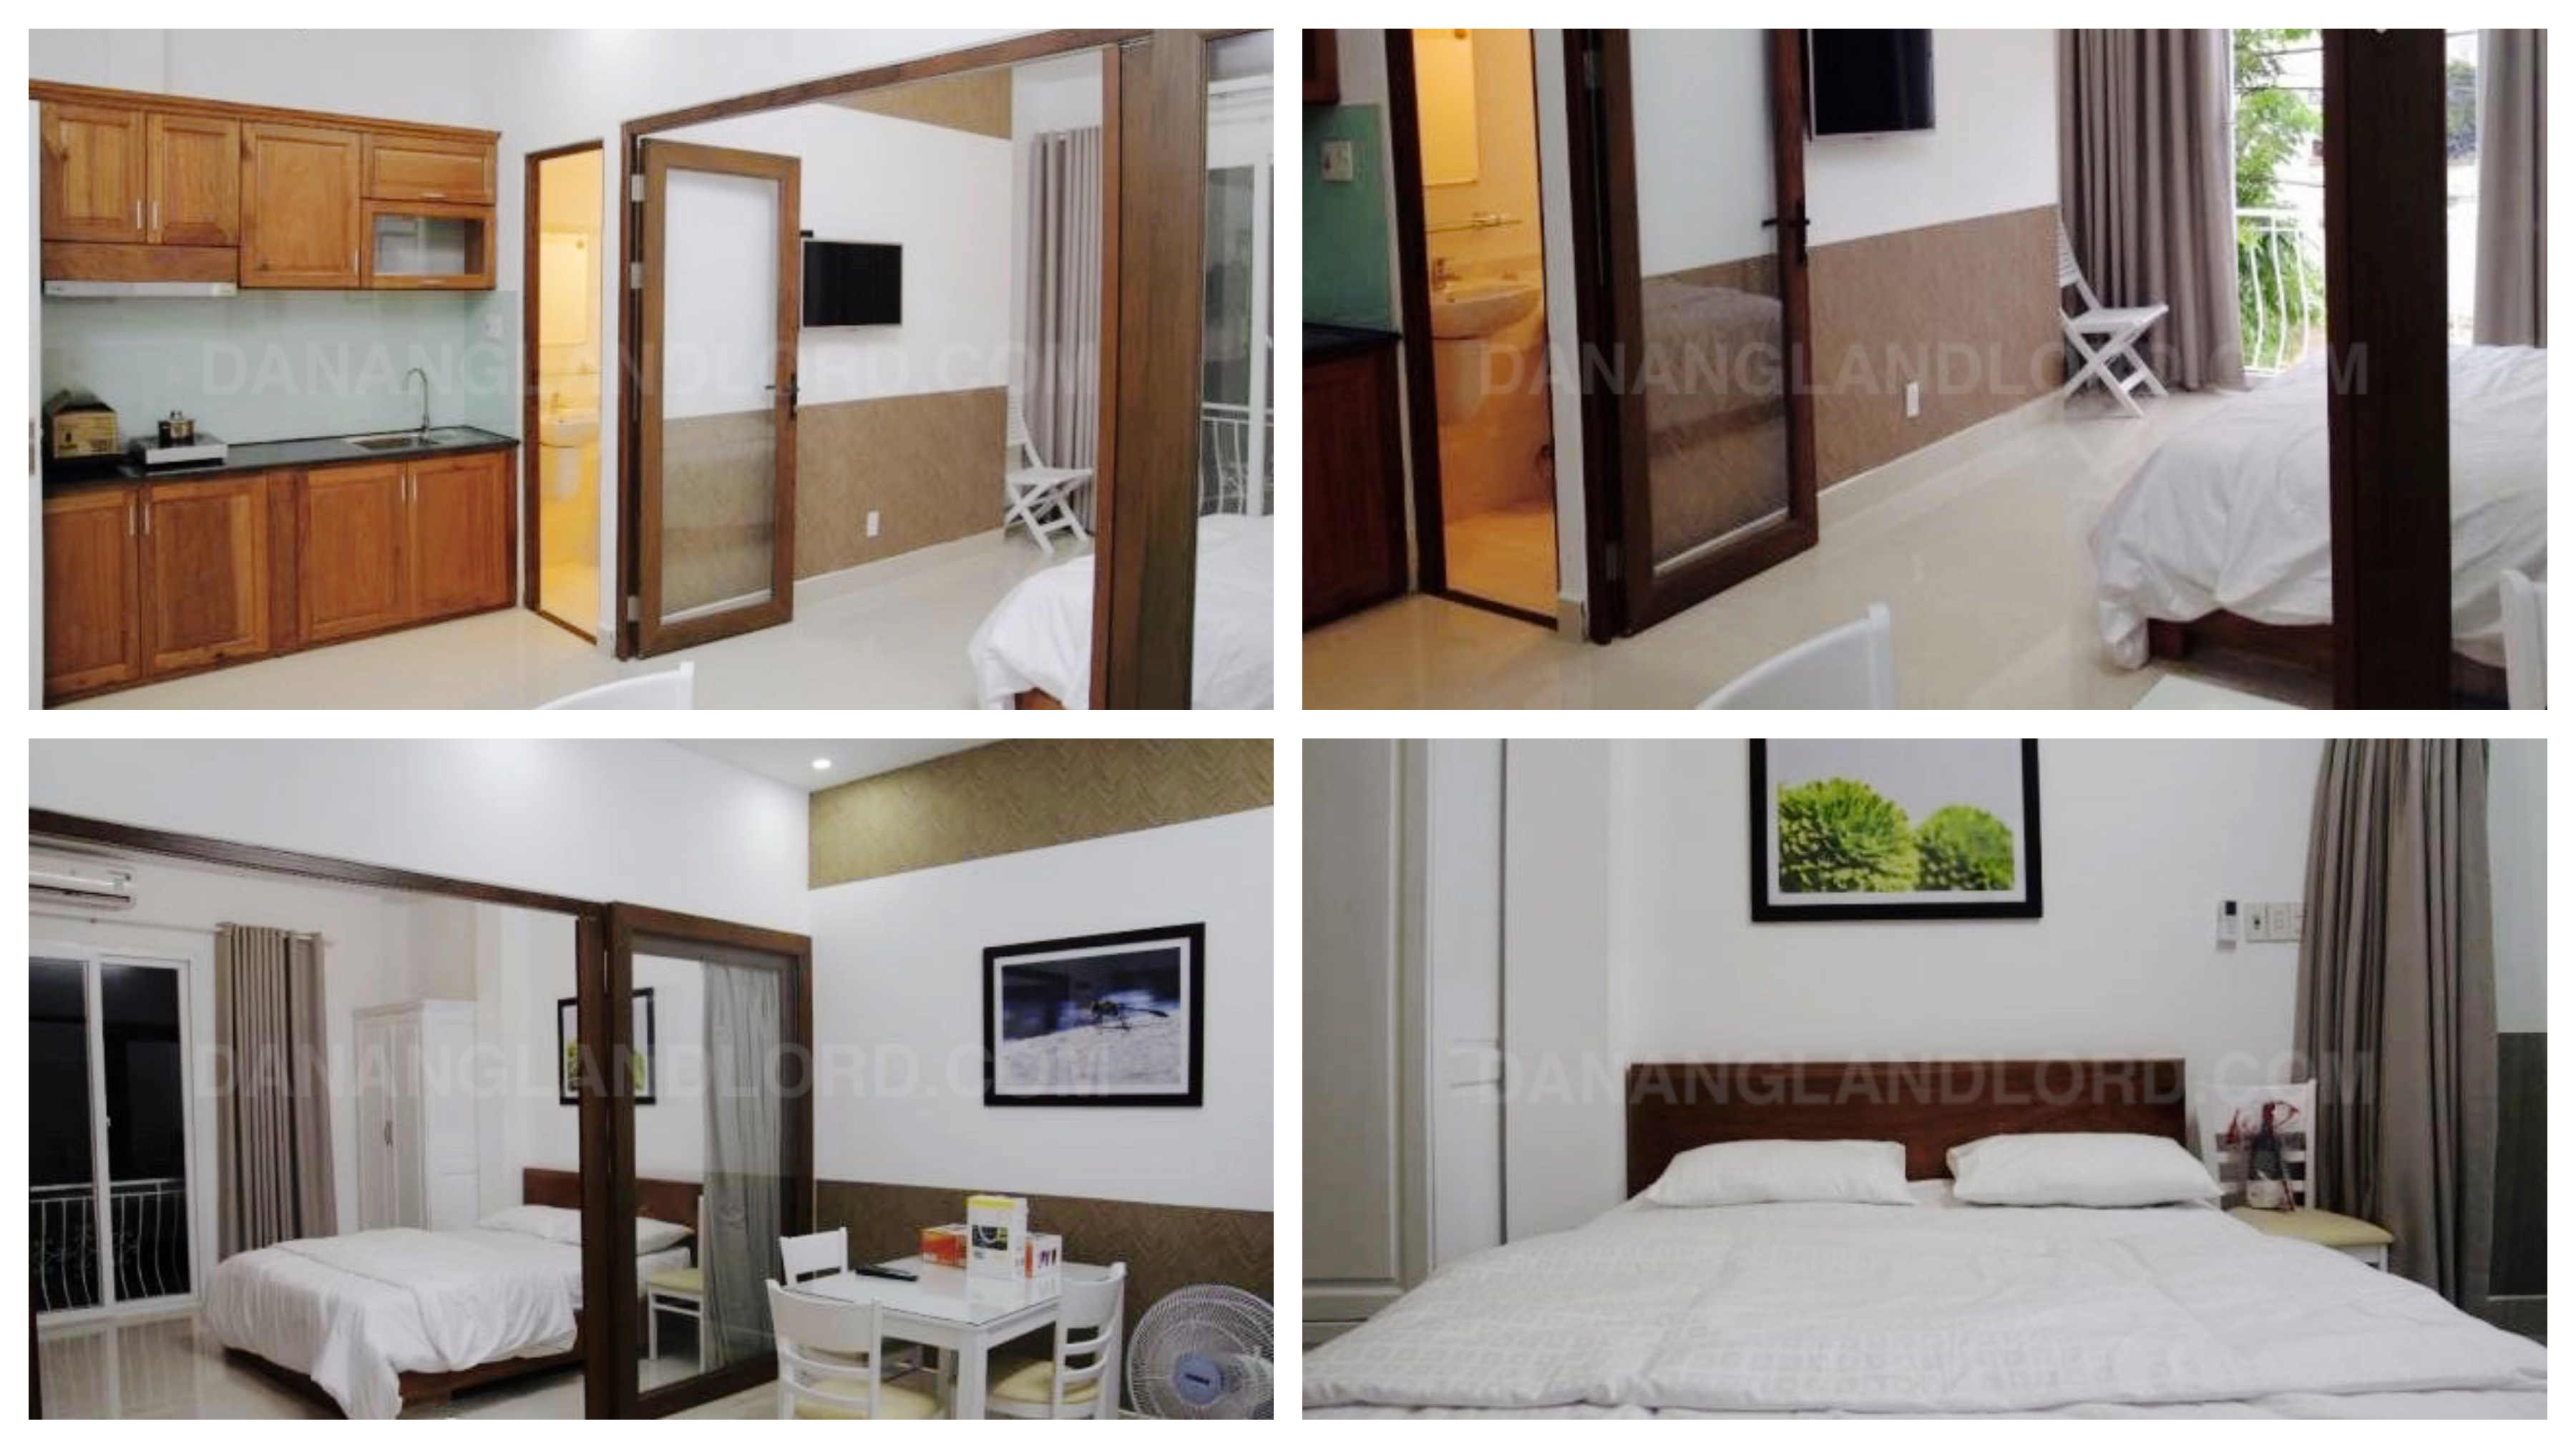 One Bedroom Apartment In An Thuong Good Price Eqd4 Da Nang Landlord